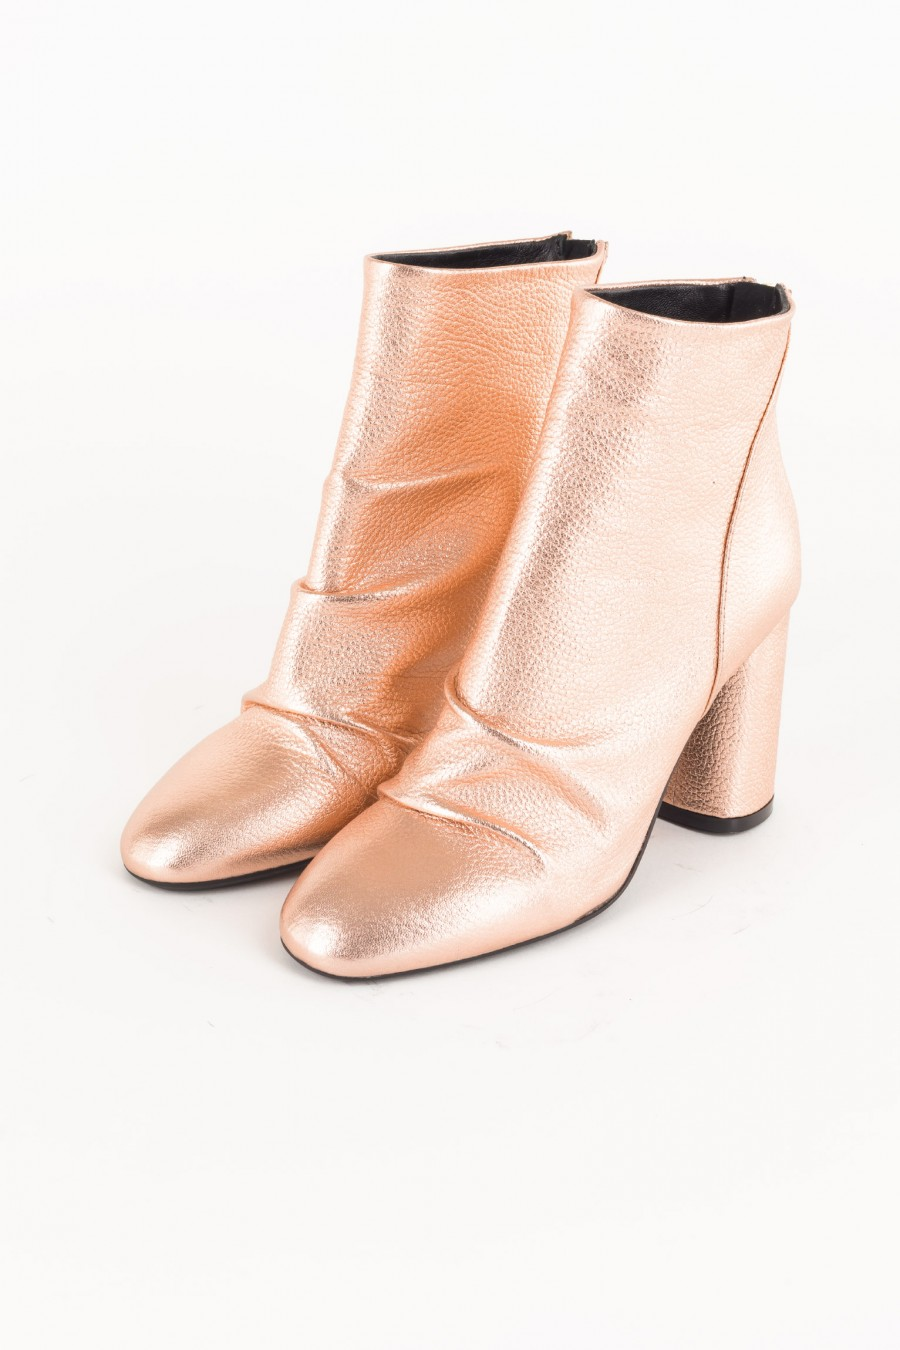 Rosegold boots